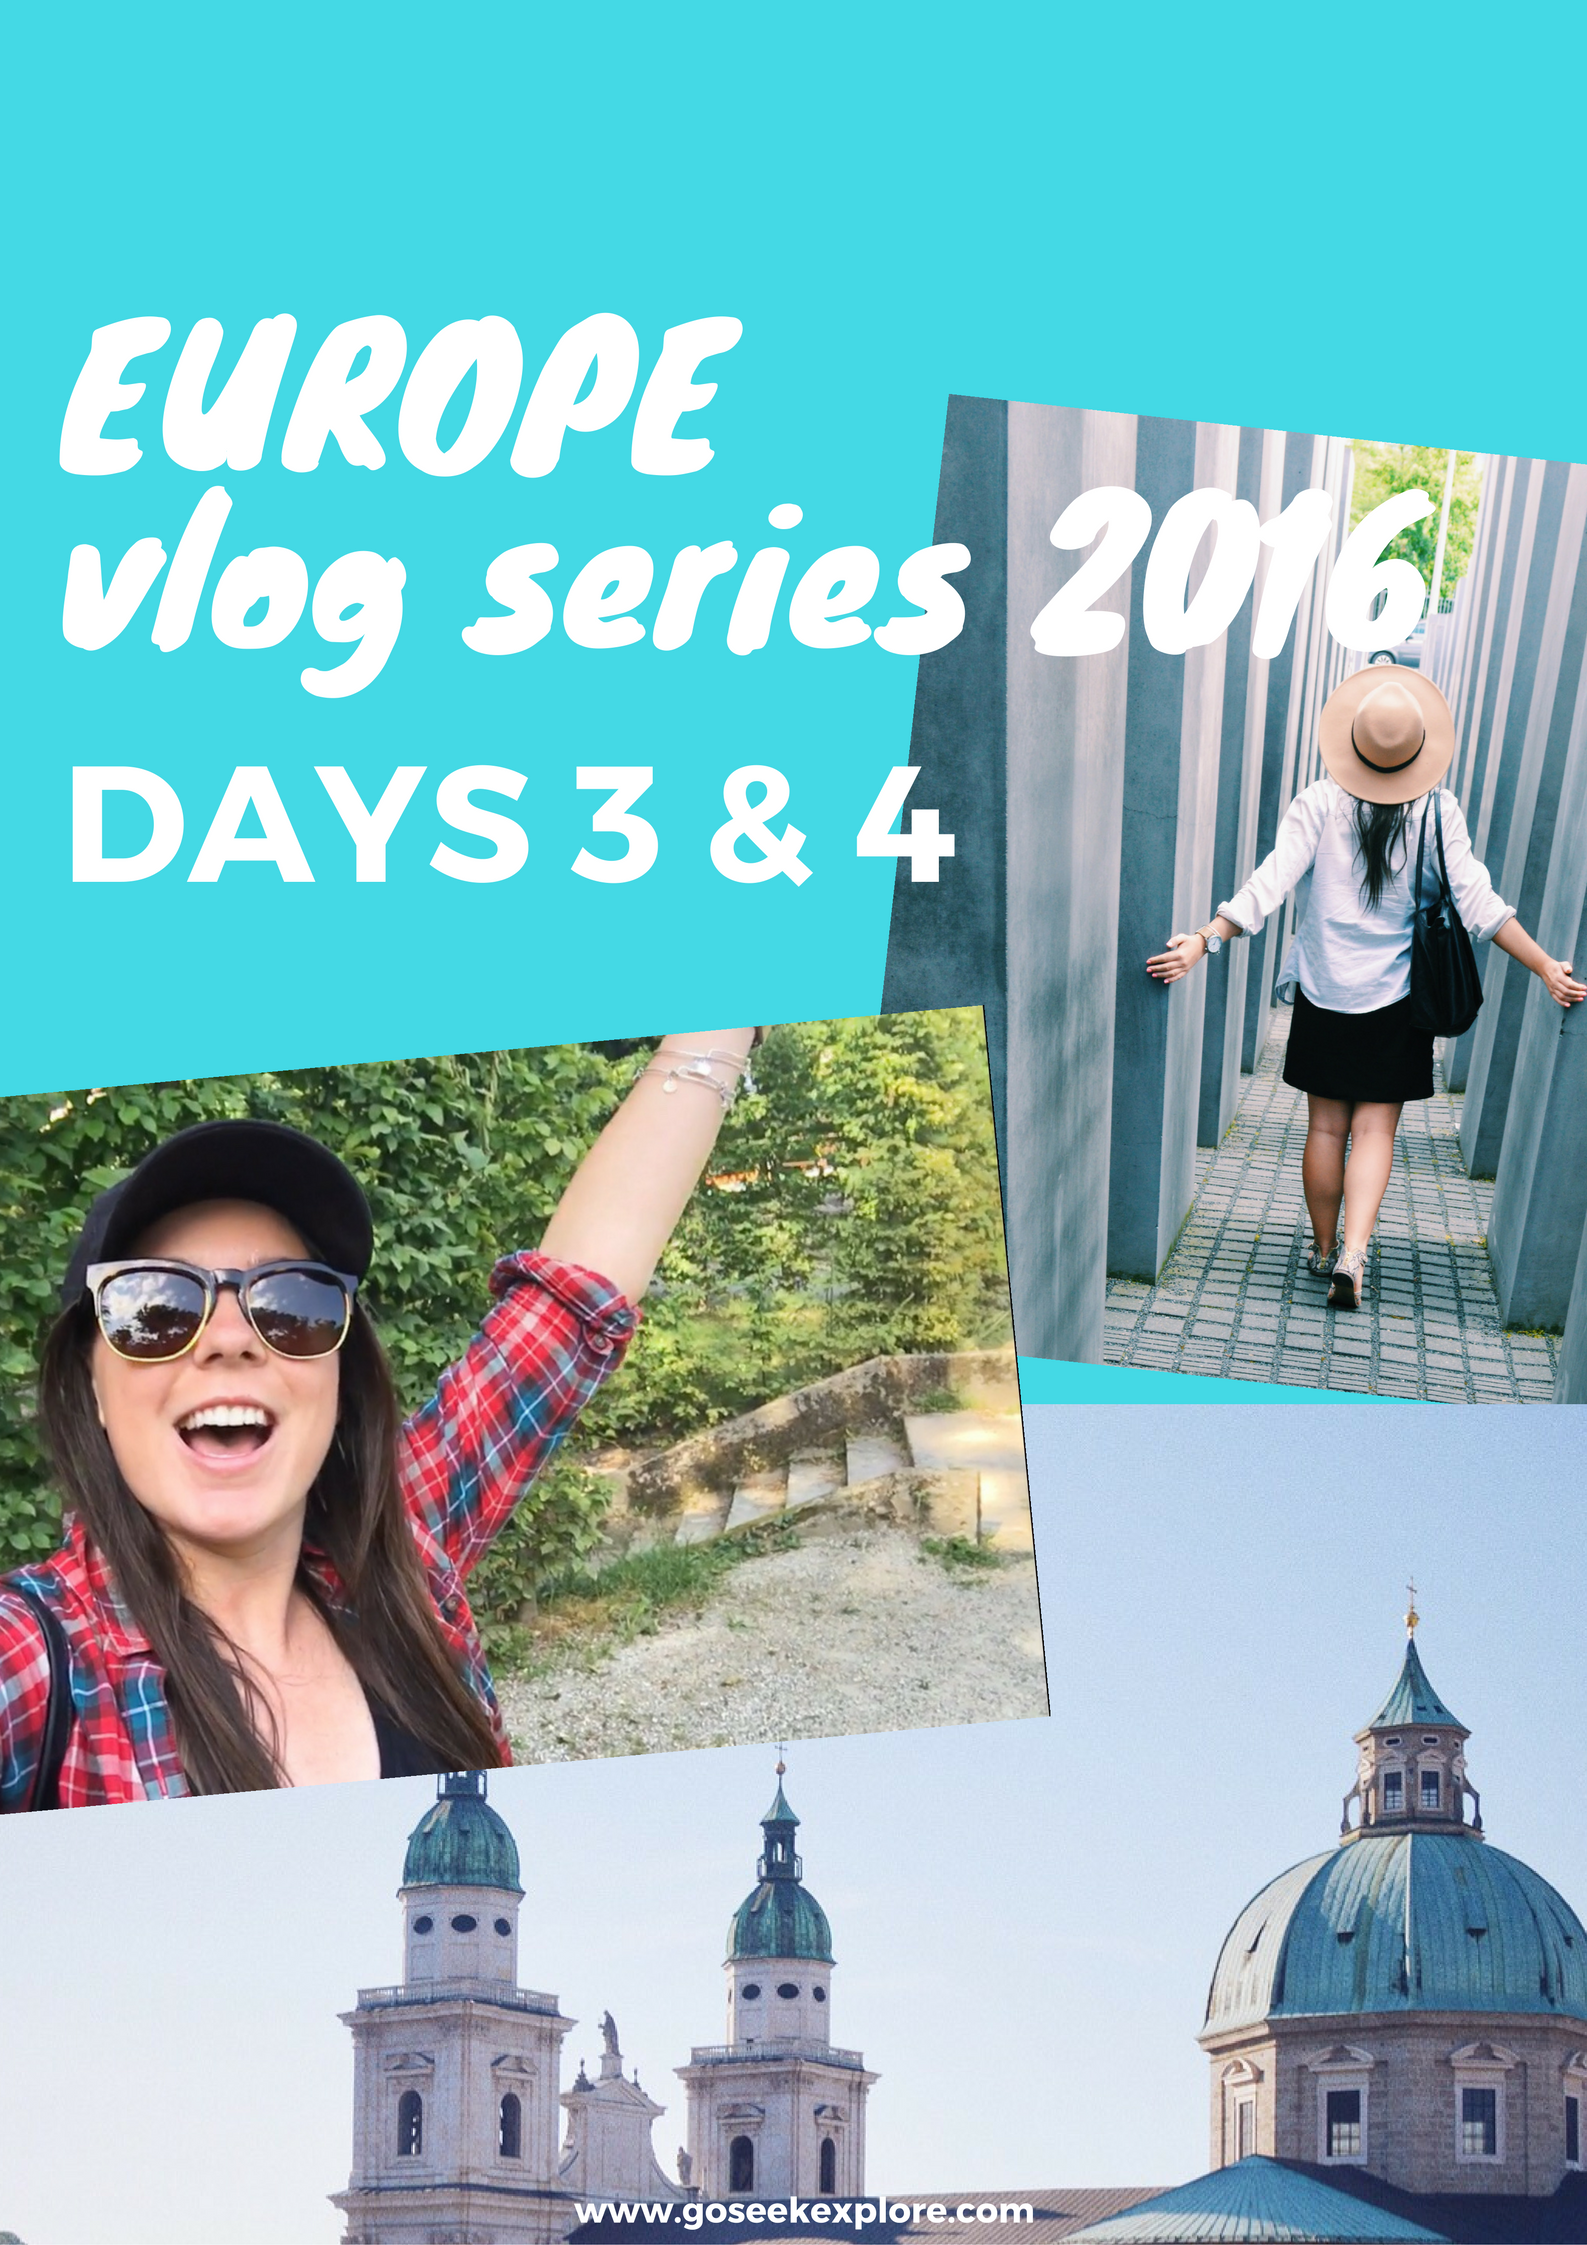 Europe VLOG Series days 3 & 4, working and traveling in Vienna!